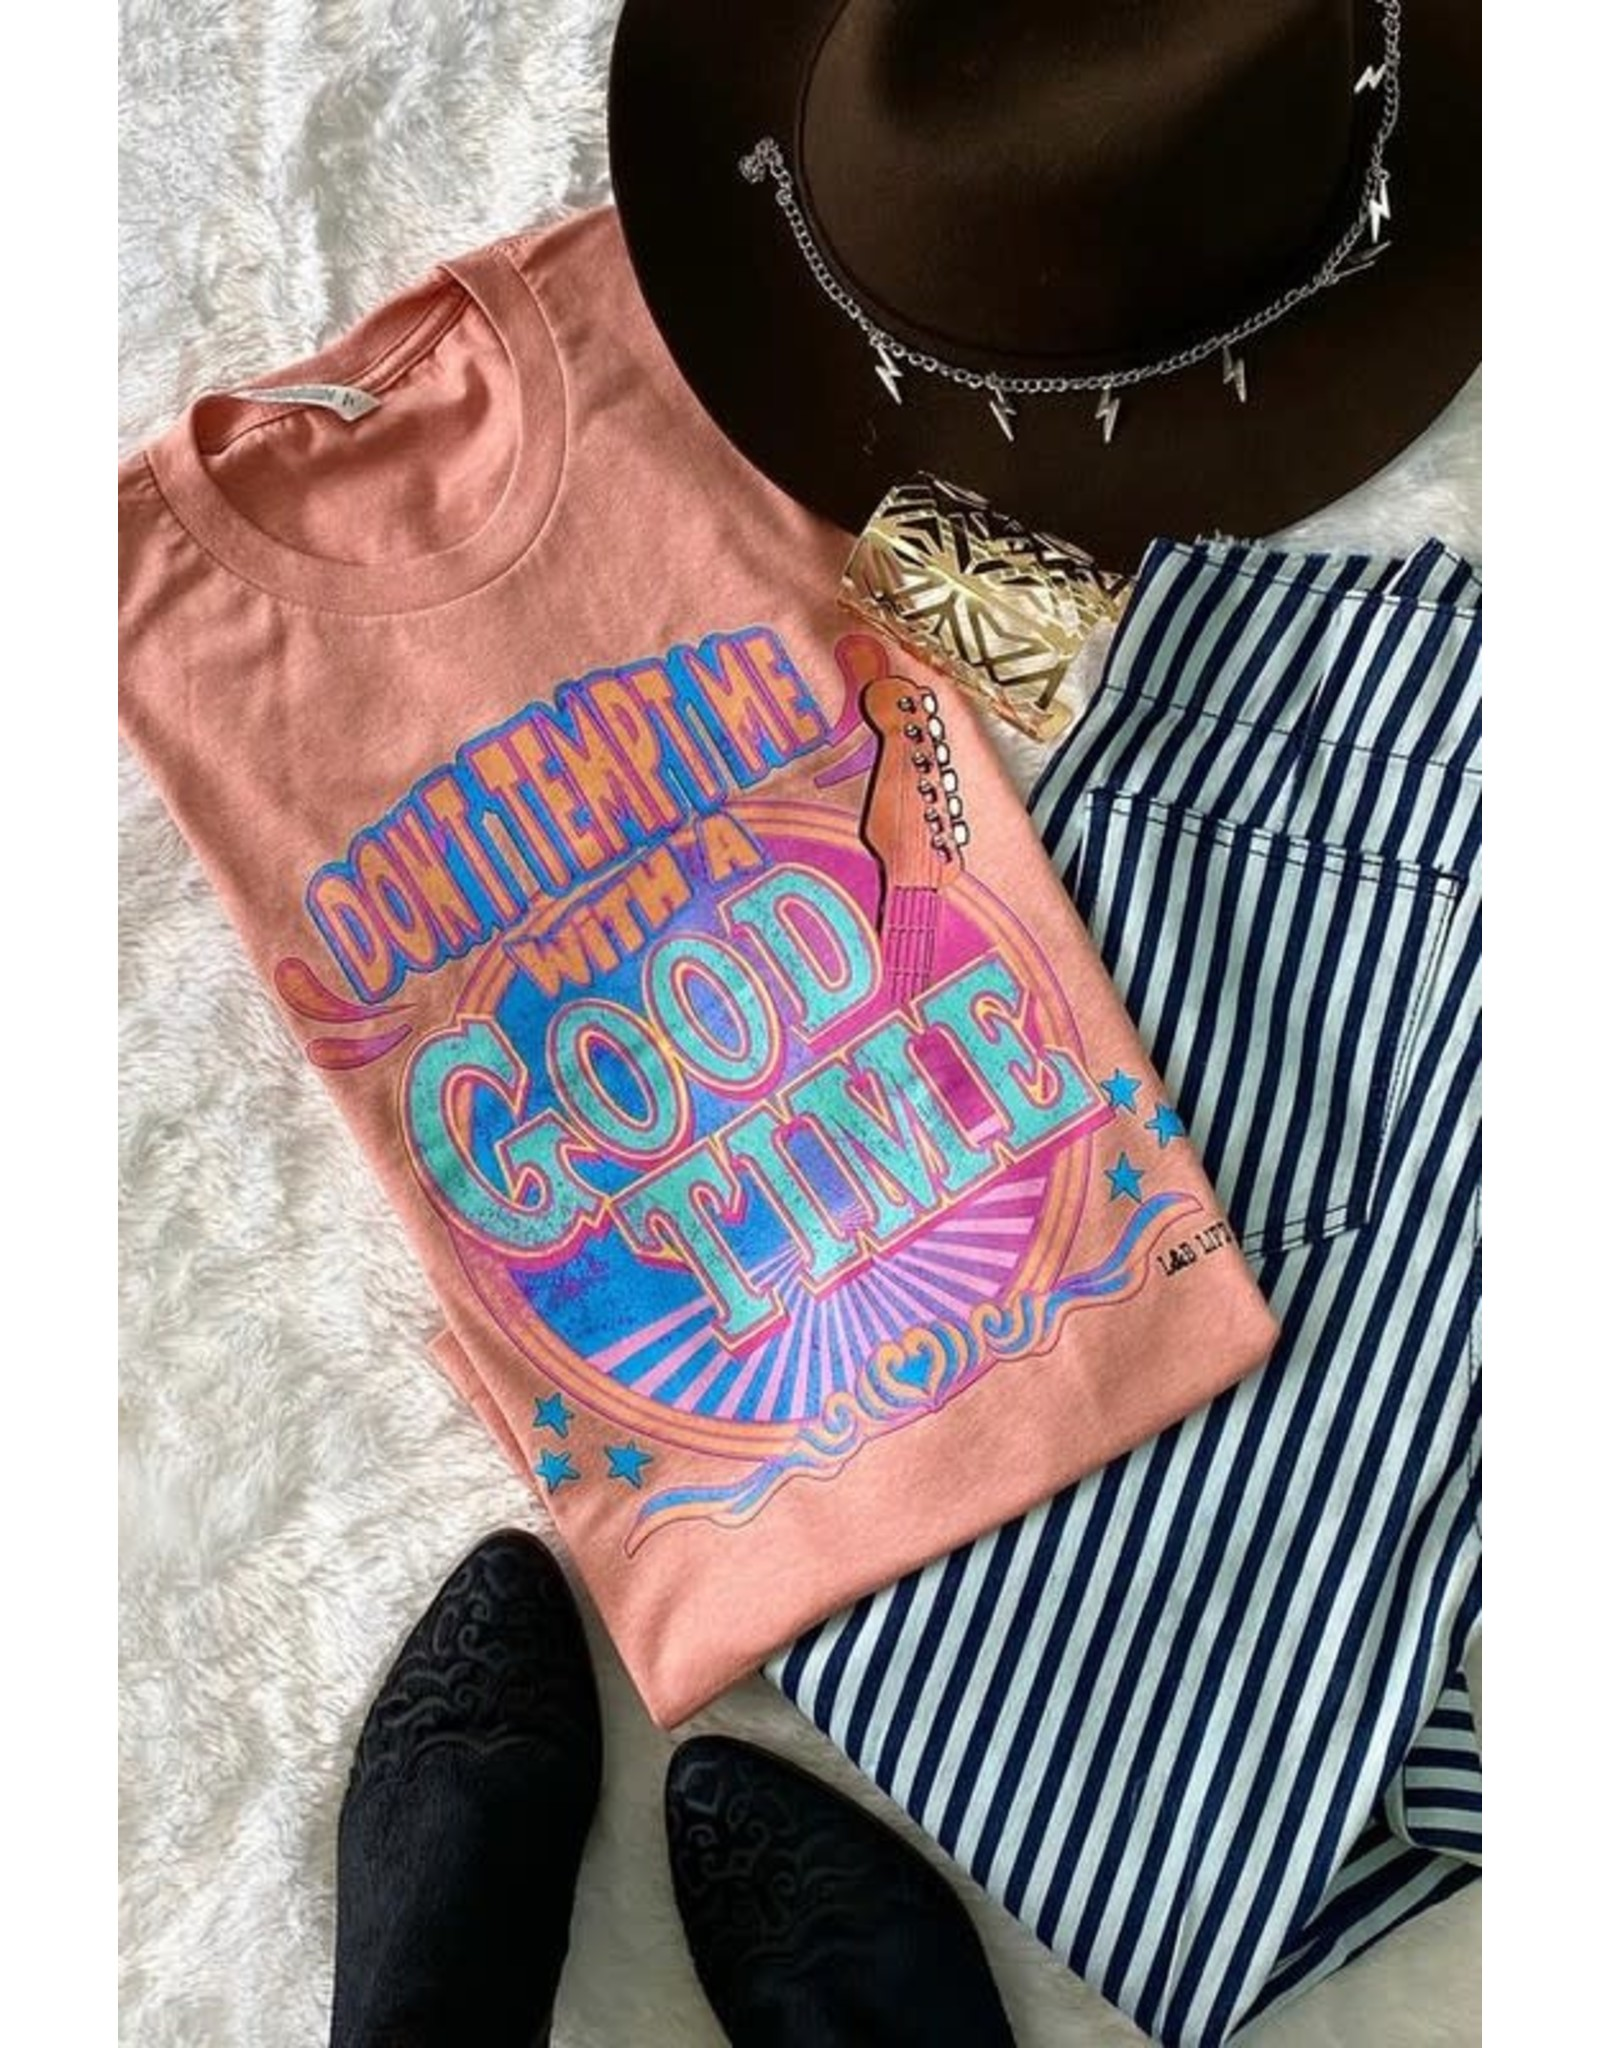 Don't Tempt Me with a Good Time Tee